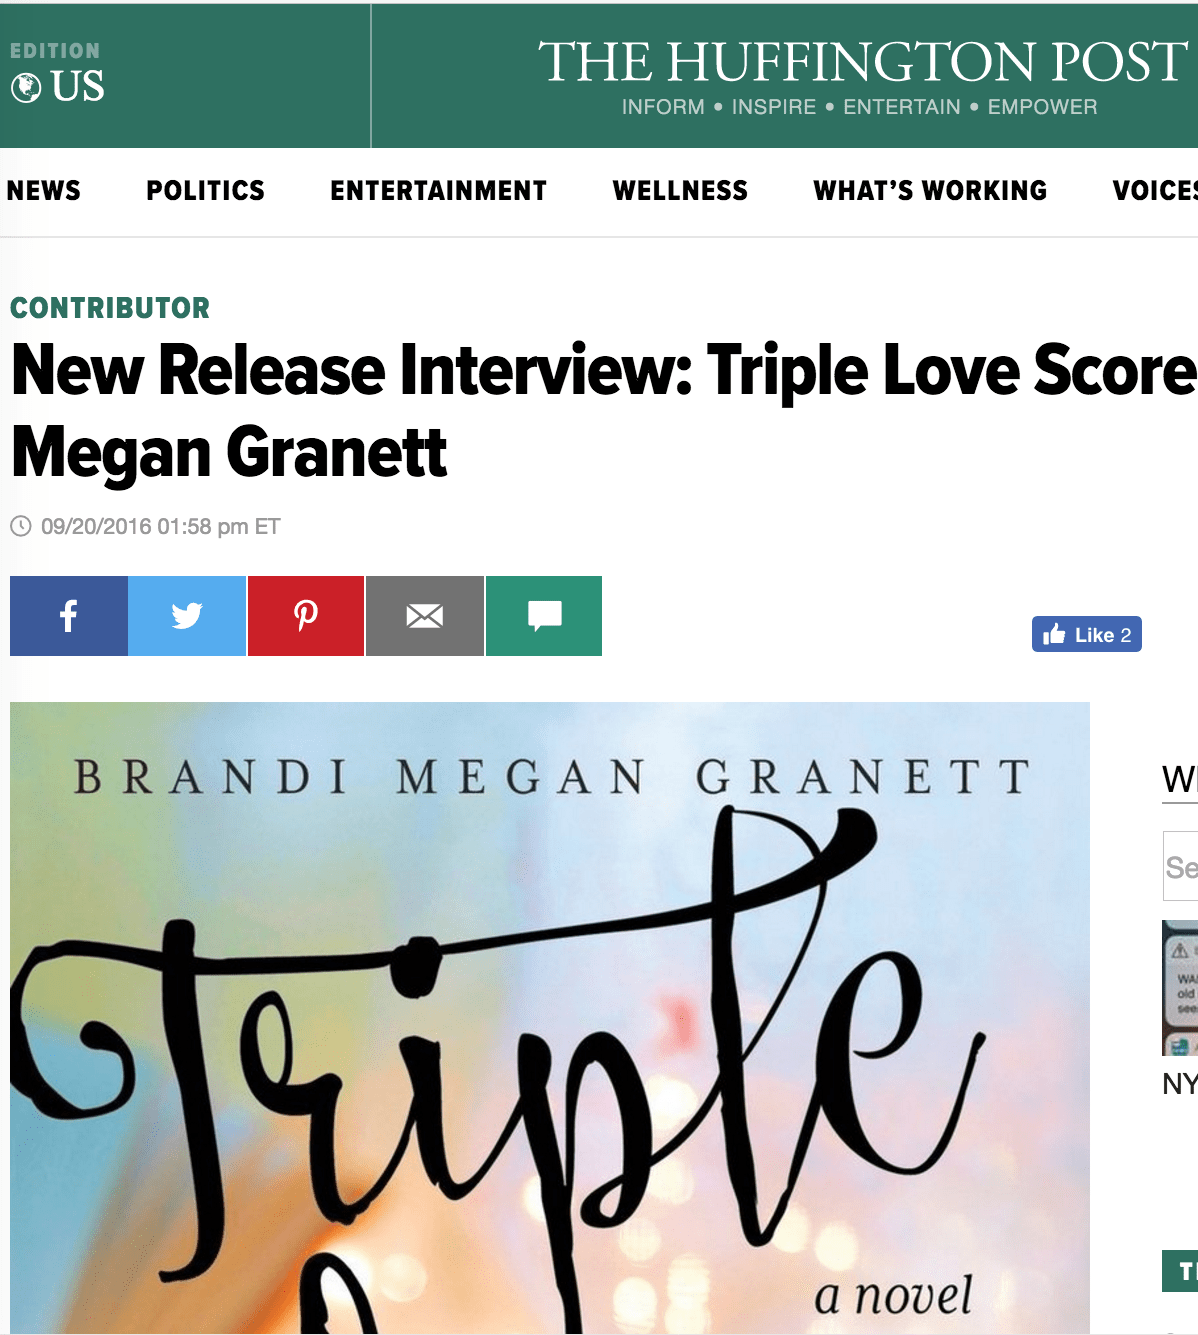 Huffington Post: New Release Interview: Triple Love Score by Brandi Megan Granett